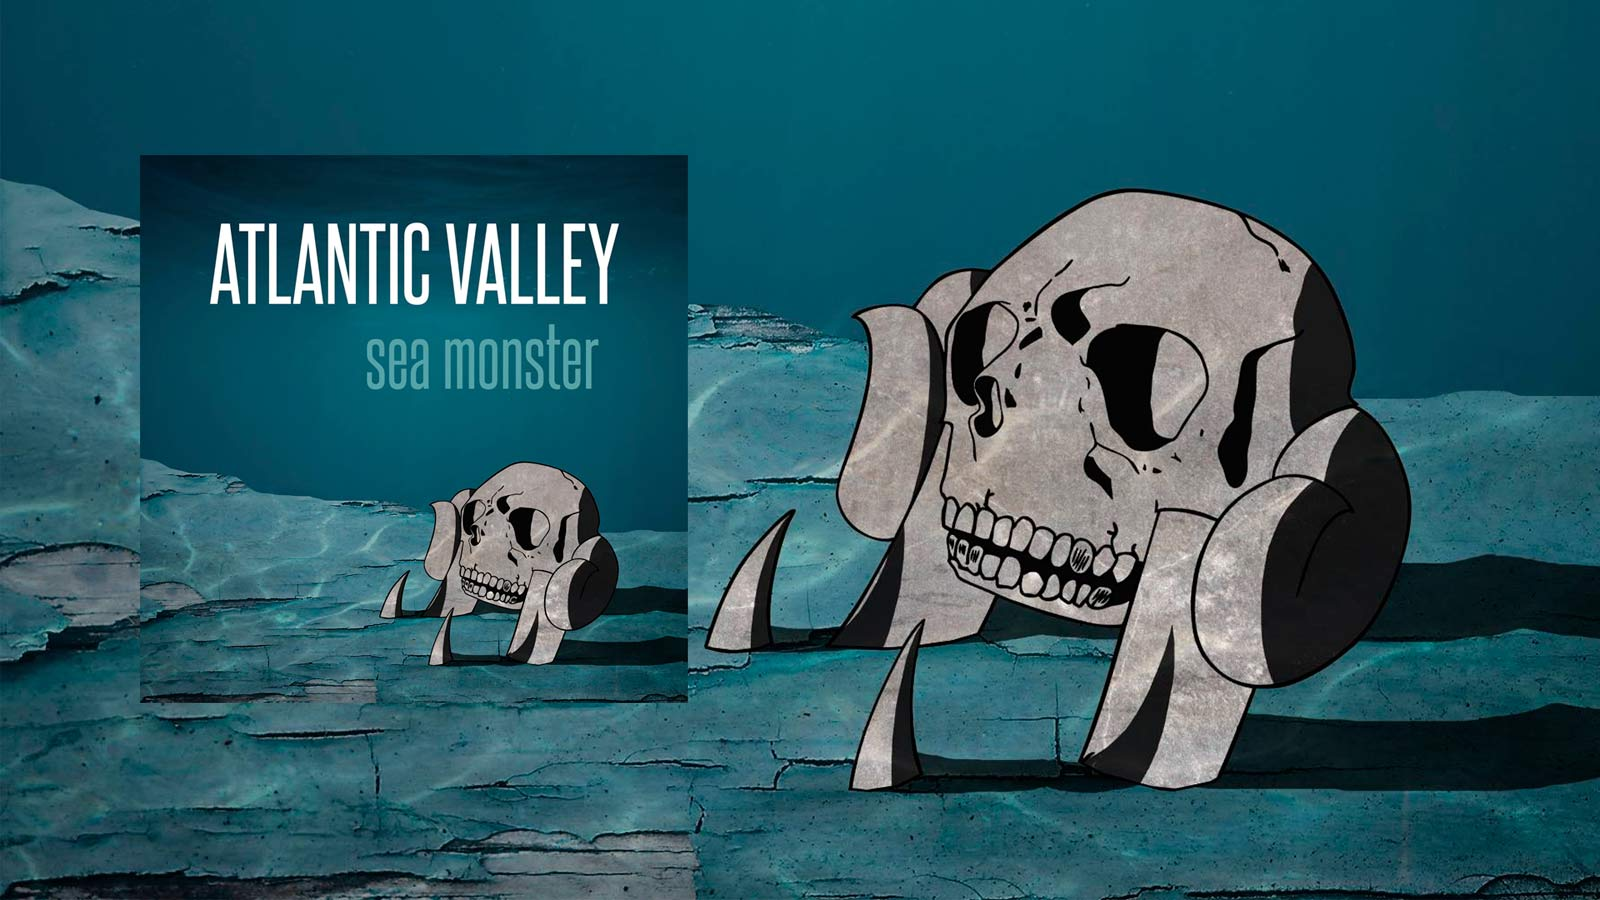 atlantic-valley-sea-monster